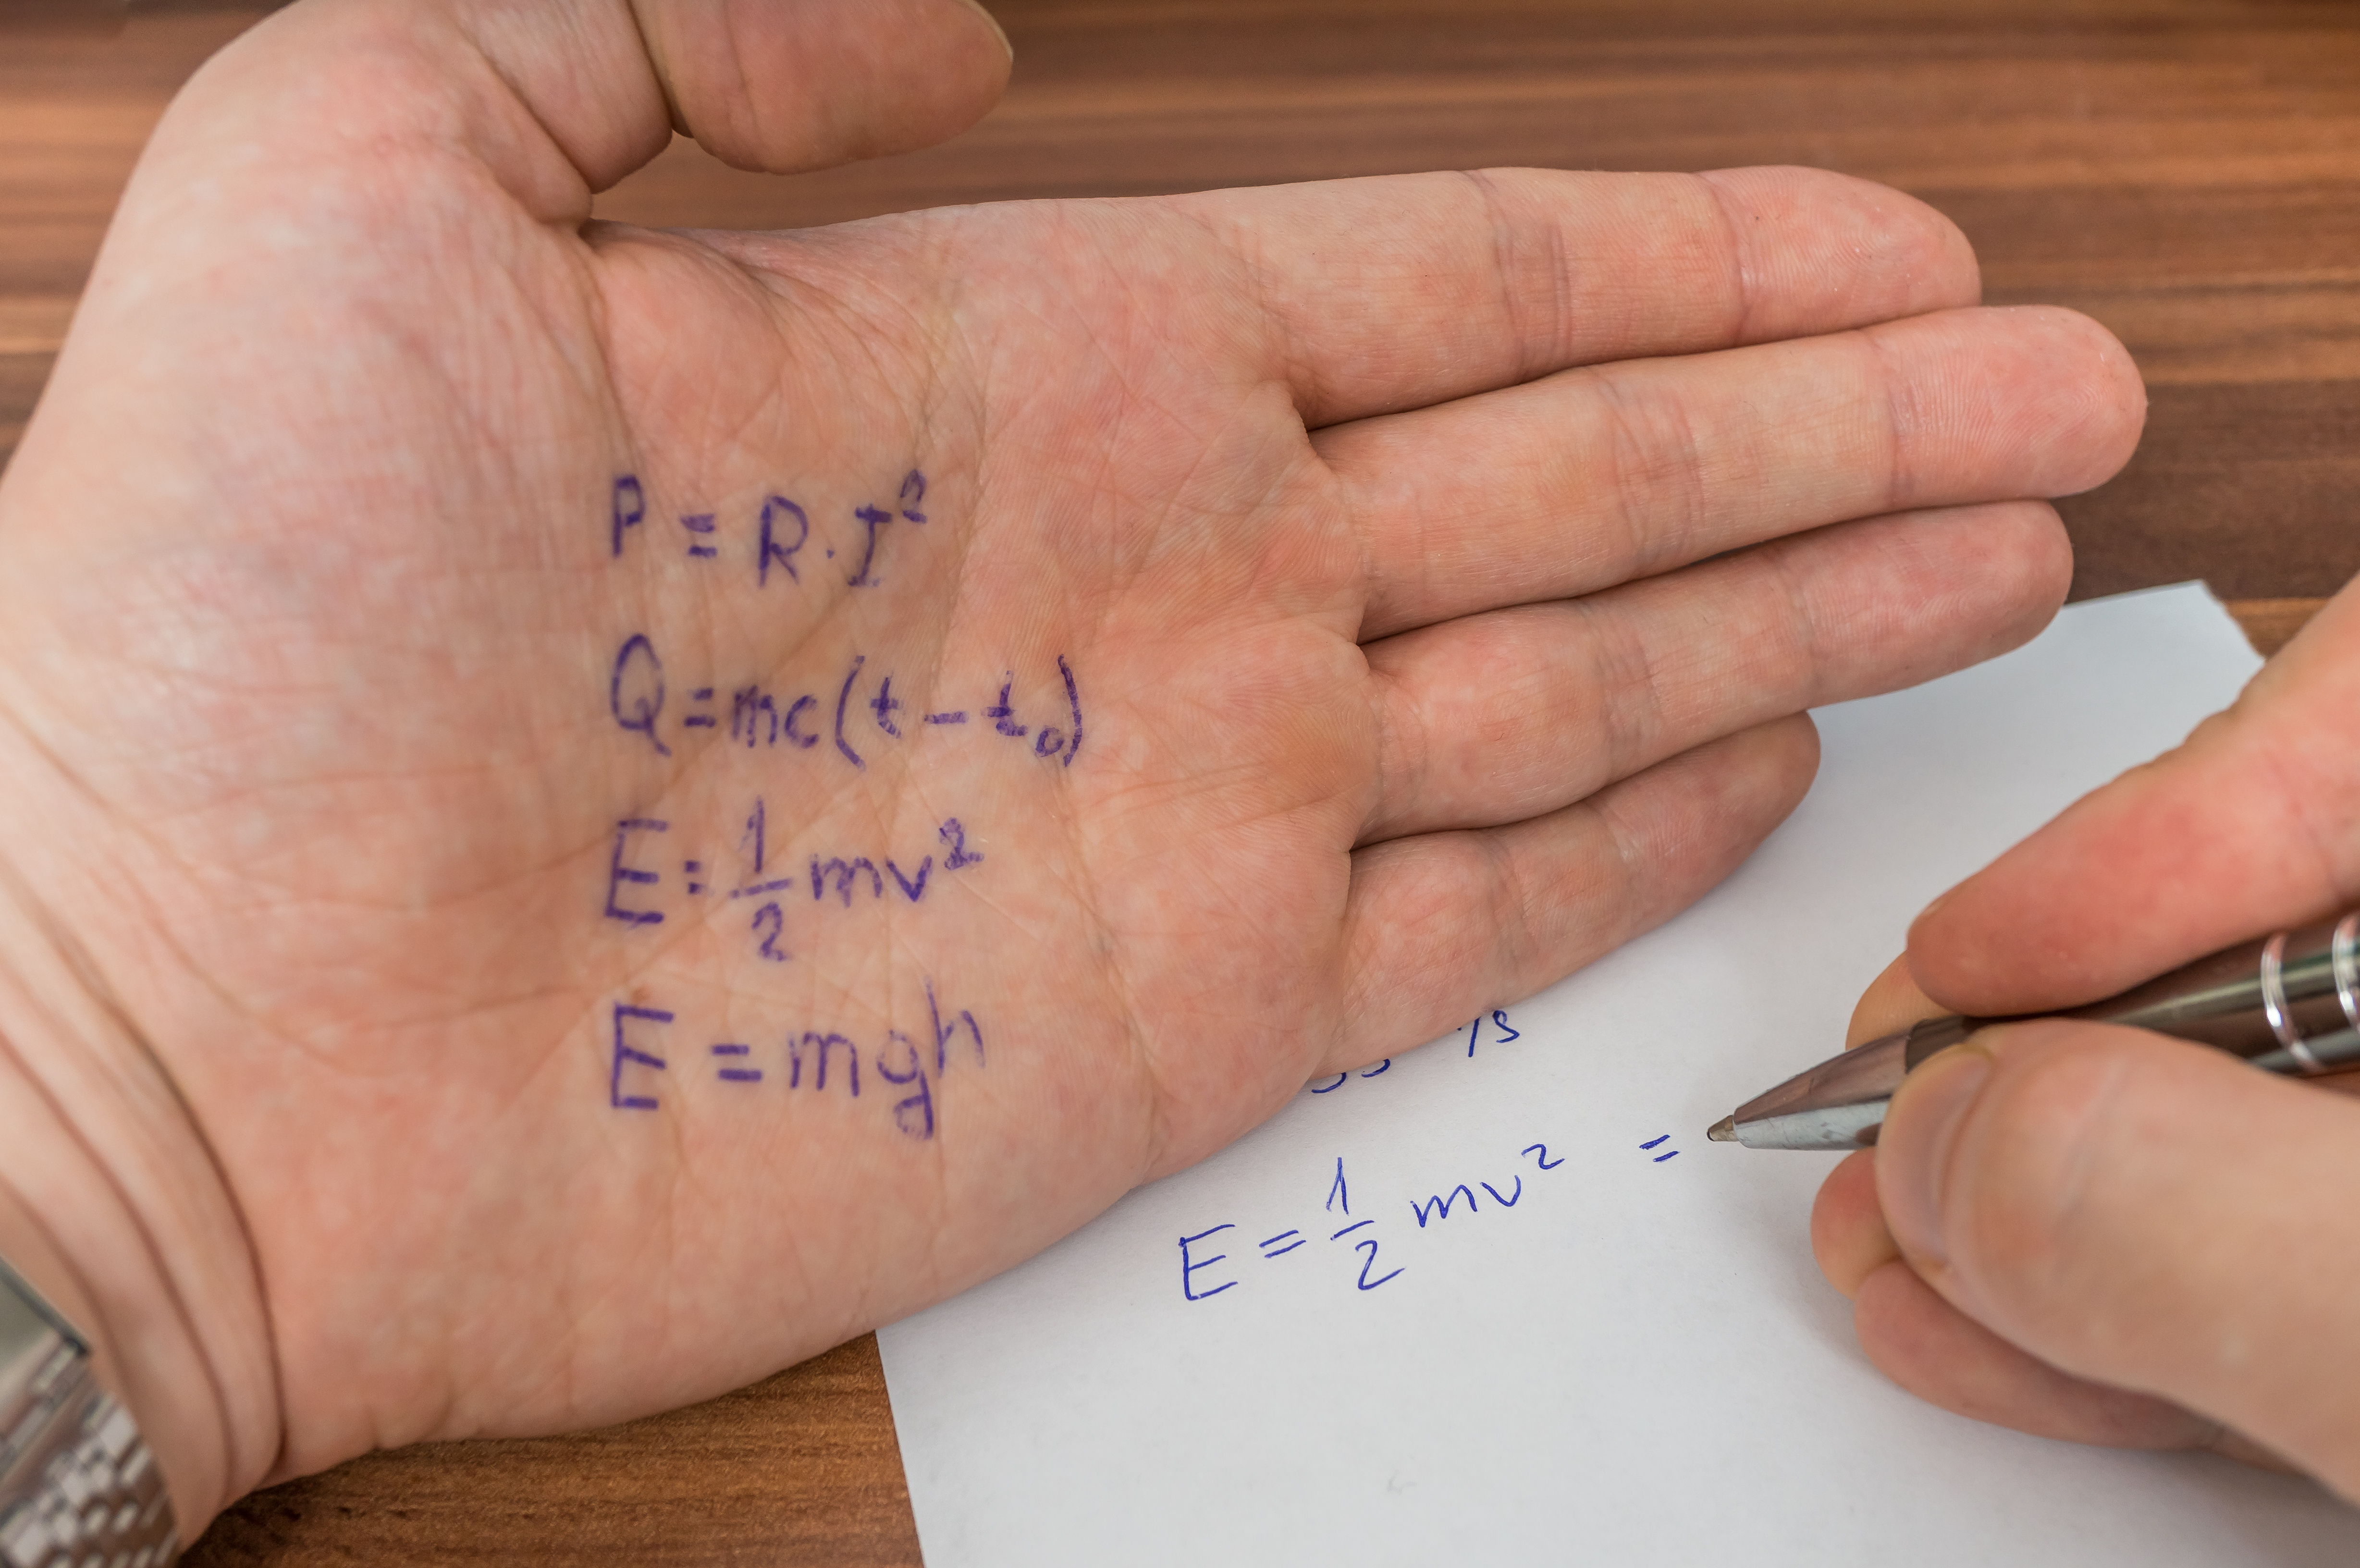 stop cheating on digital assessments student is cheating during exam cheat sheet formula written on his hand